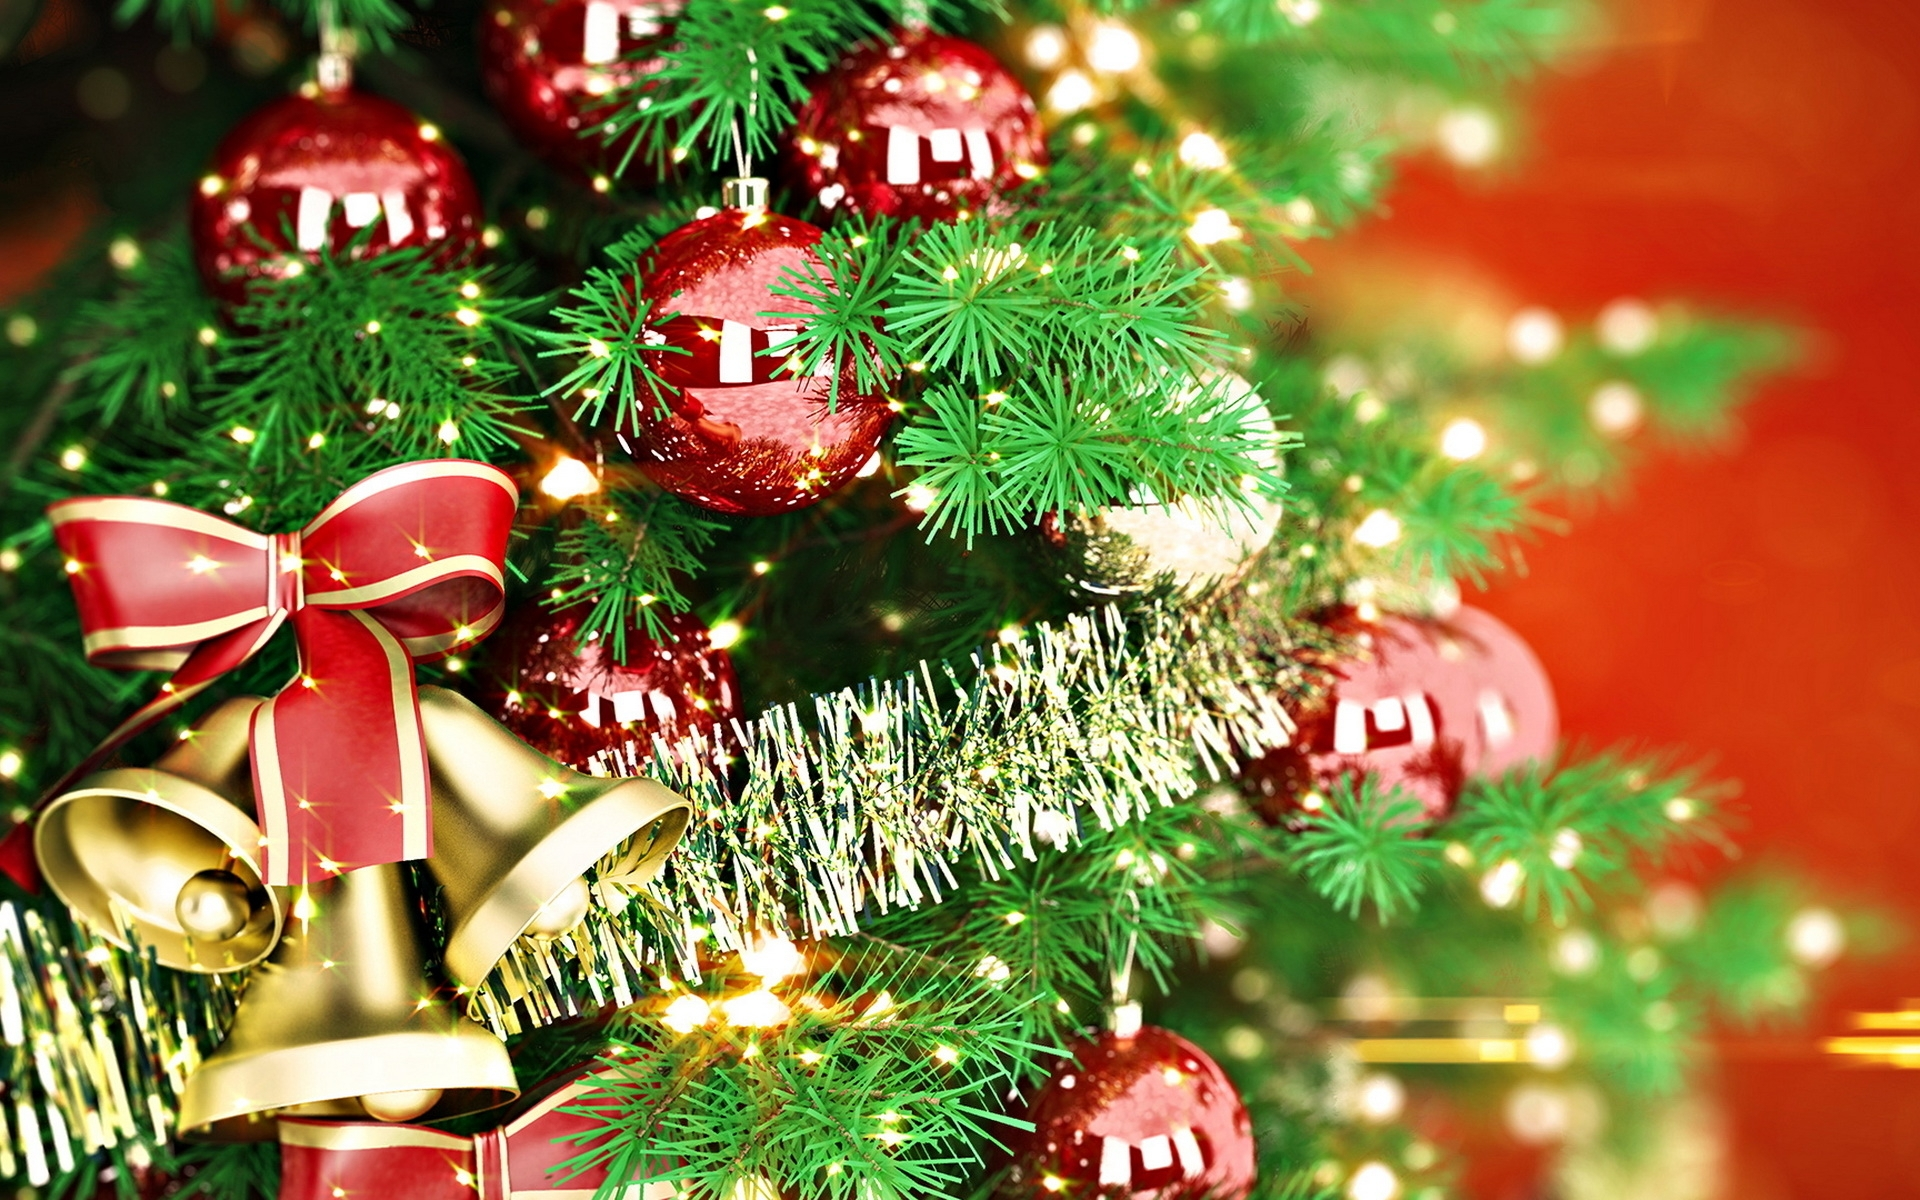 Christmas Garland Wallpaper Posted By Christopher Sellers